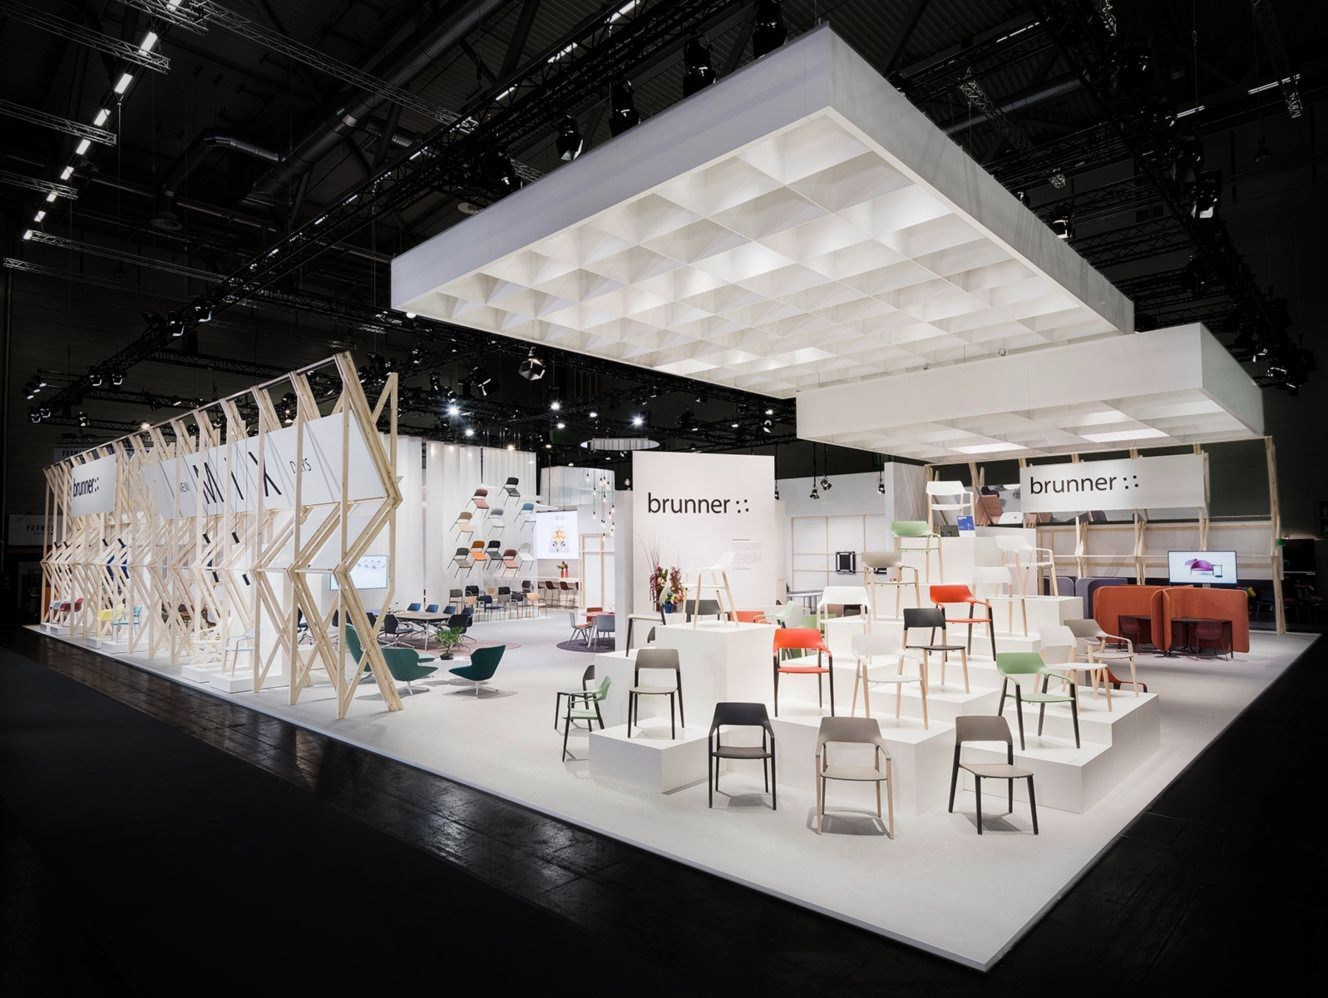 Open style exhibition stand of Brunner in Orgatec 2016 showcasing products in new inviting view and structure arrangement (2)